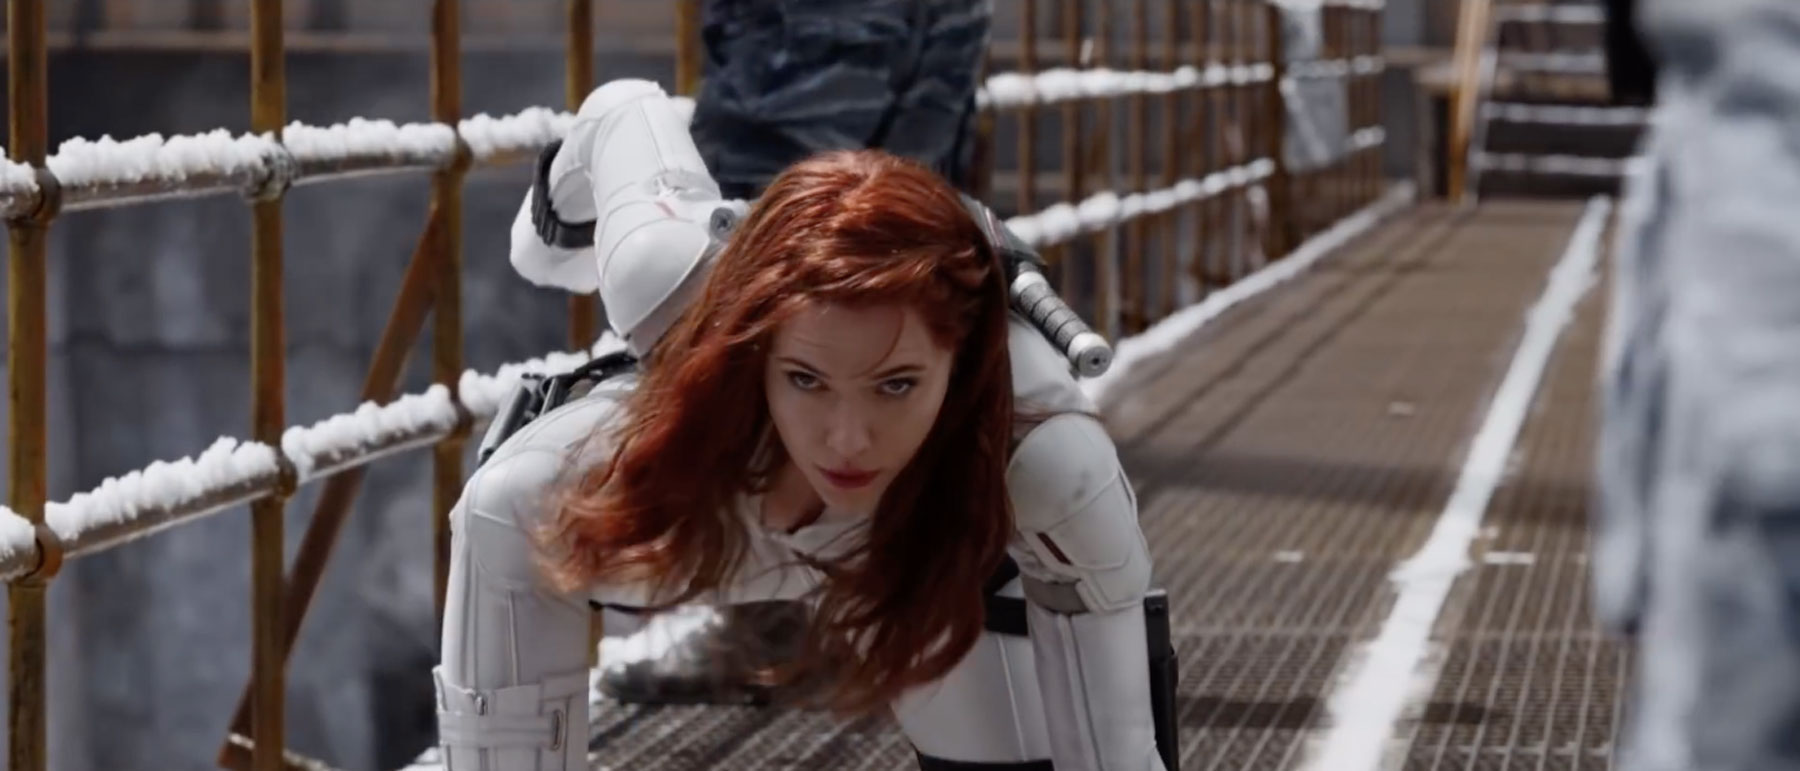 Scarlett Johansson as Black Widow in the film's first trailer